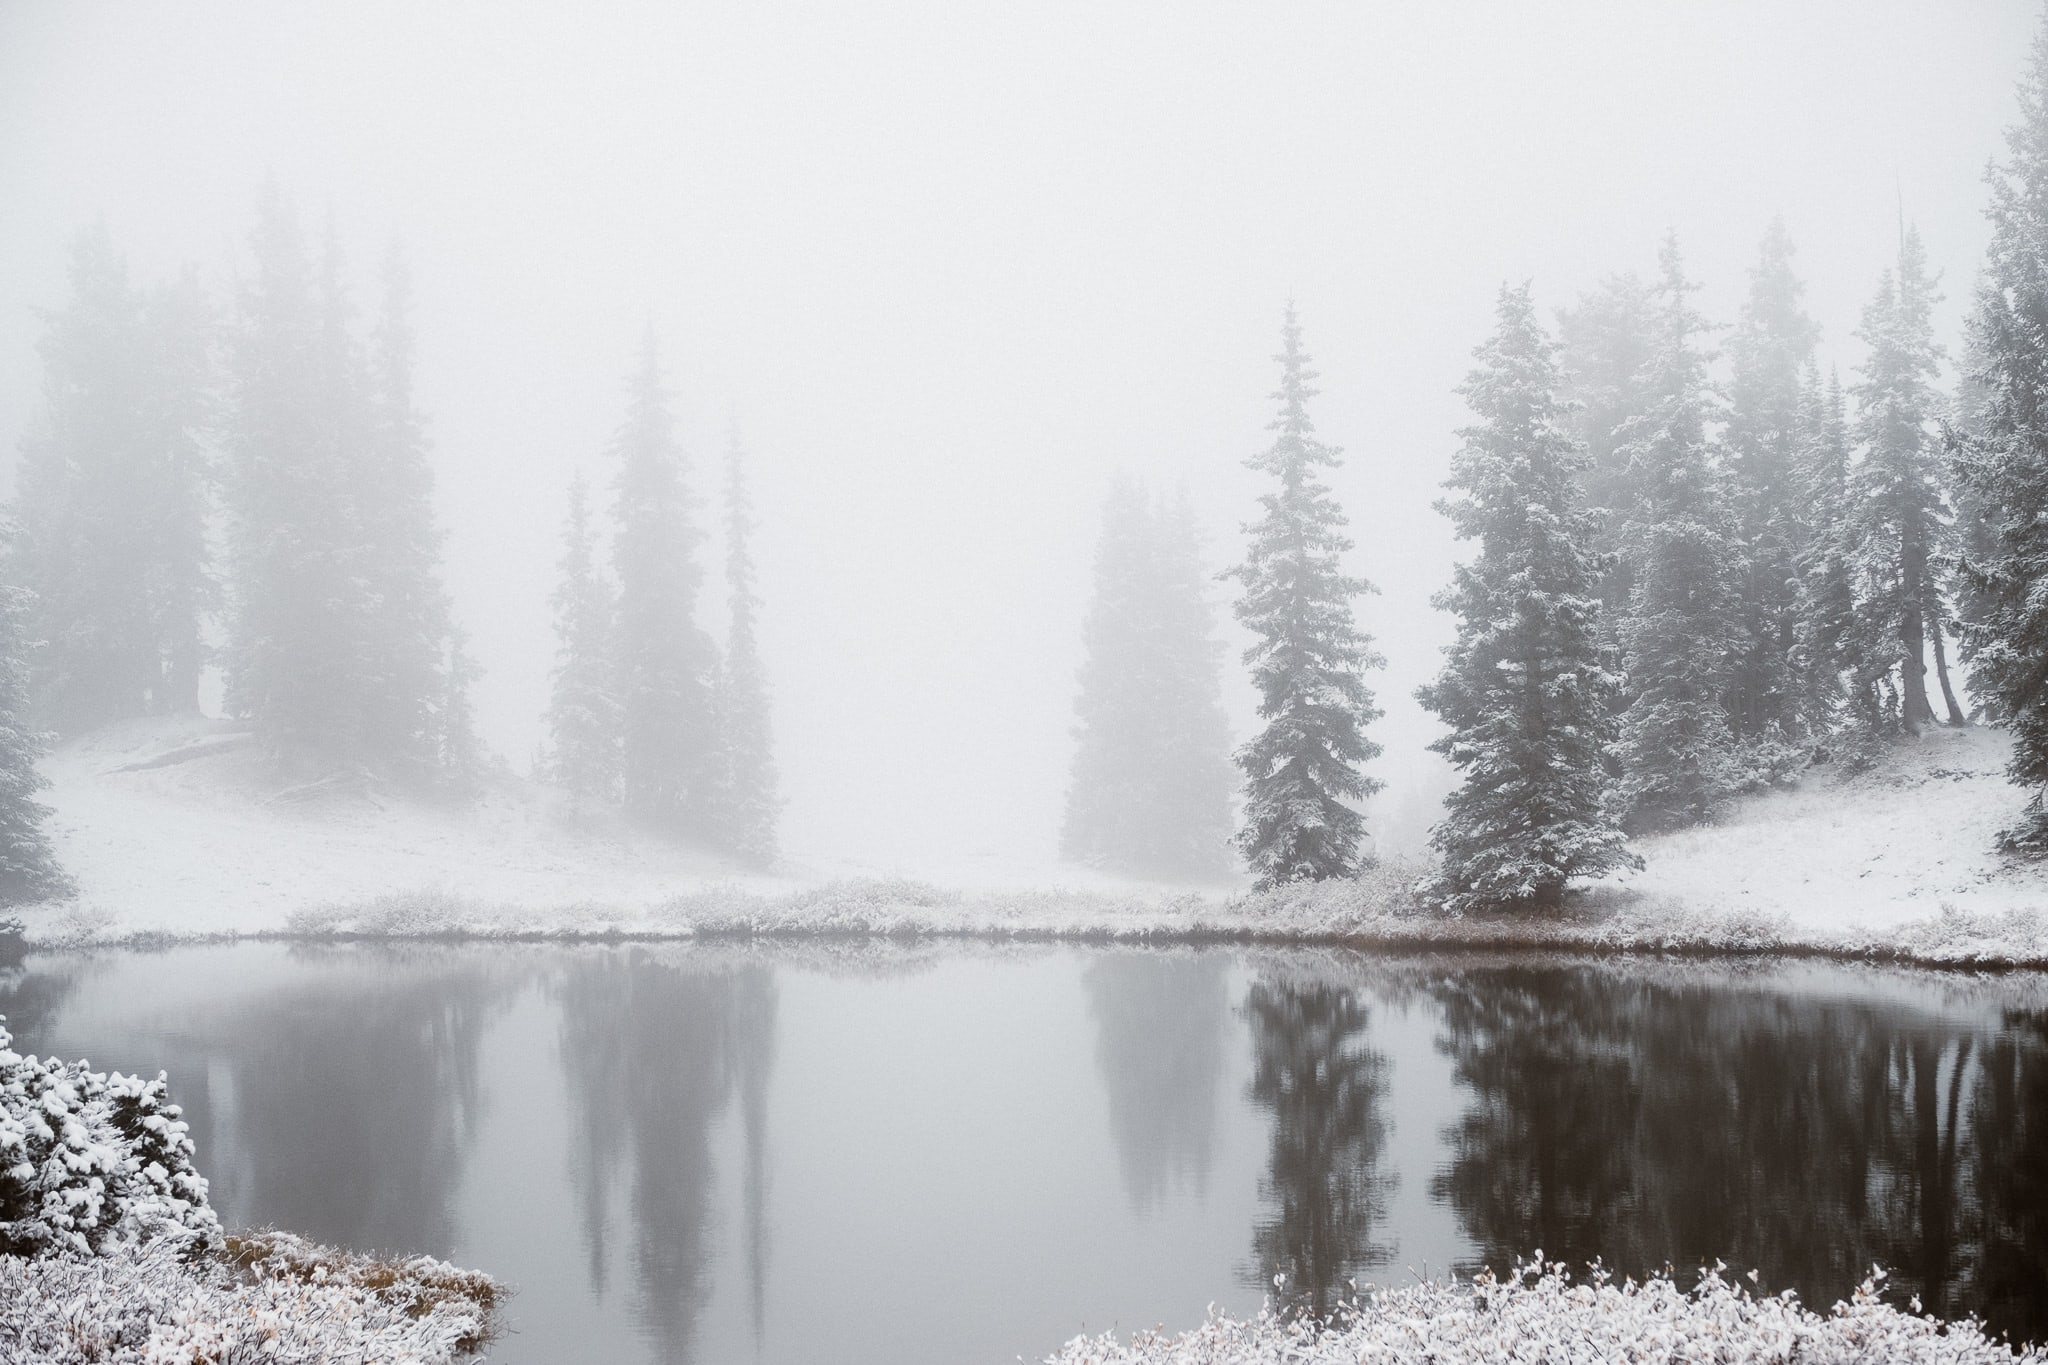 Crested Butte alpine lake mountain landscape in winter, moody winter landscape photography